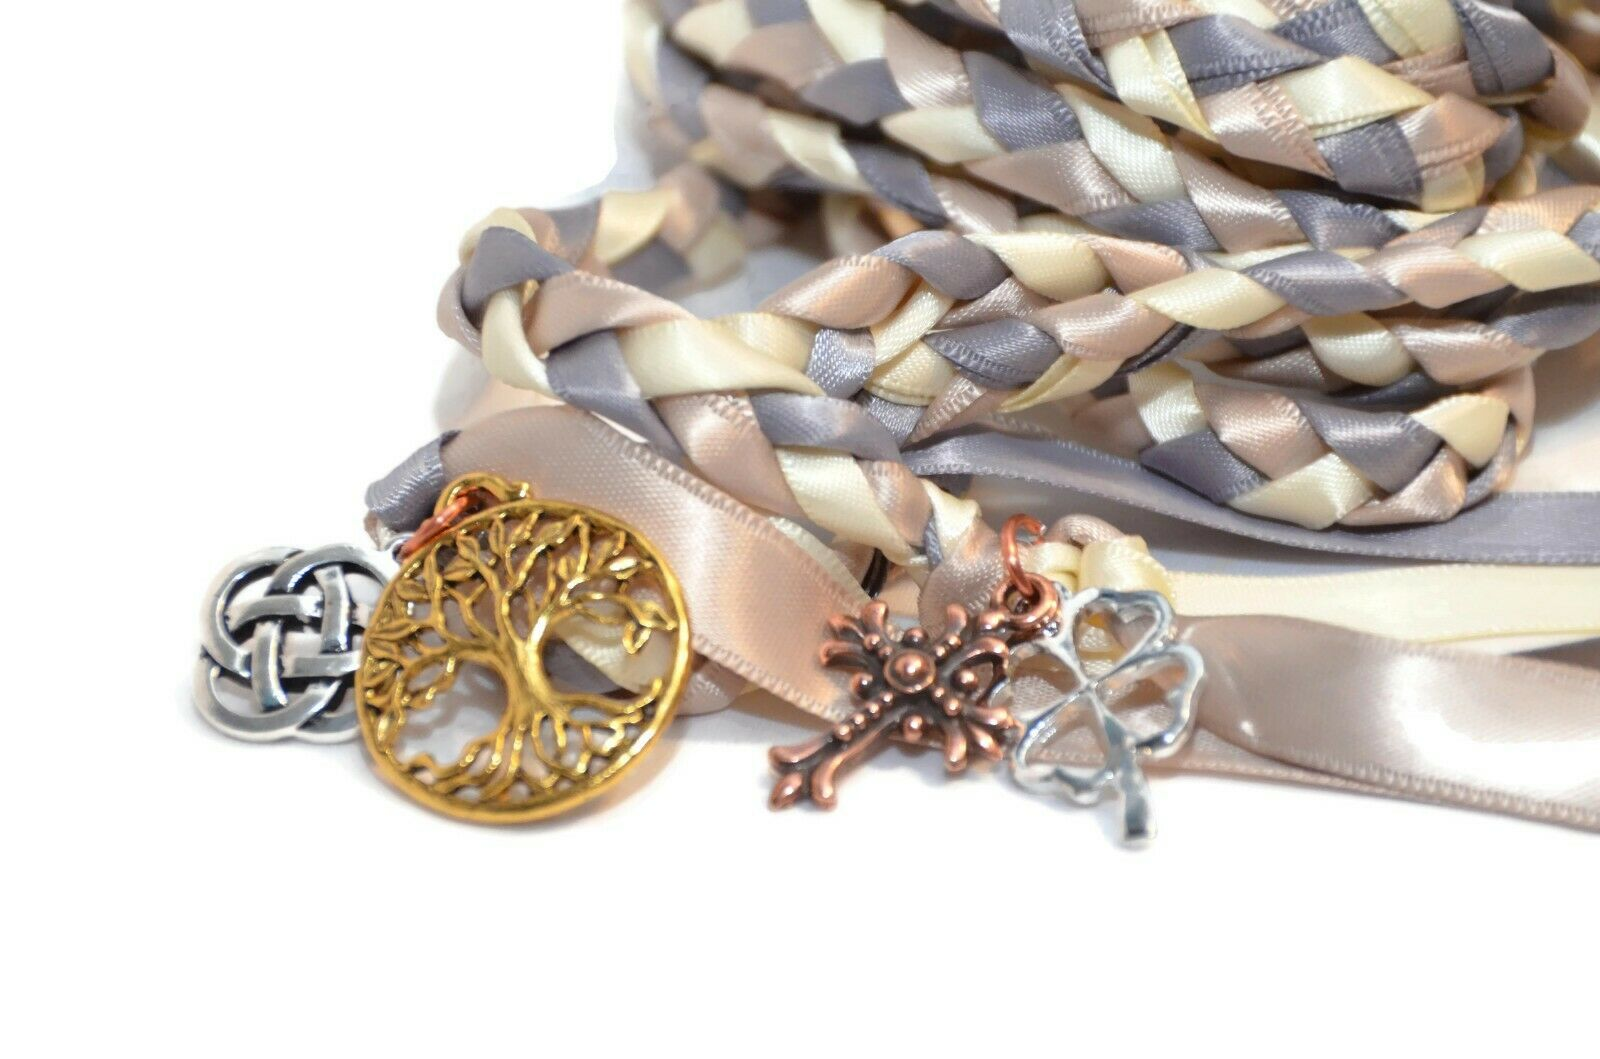 4 Charm Celtic  Wedding Handfasting Cord  DivinityBraid  Wedding  Handfasting